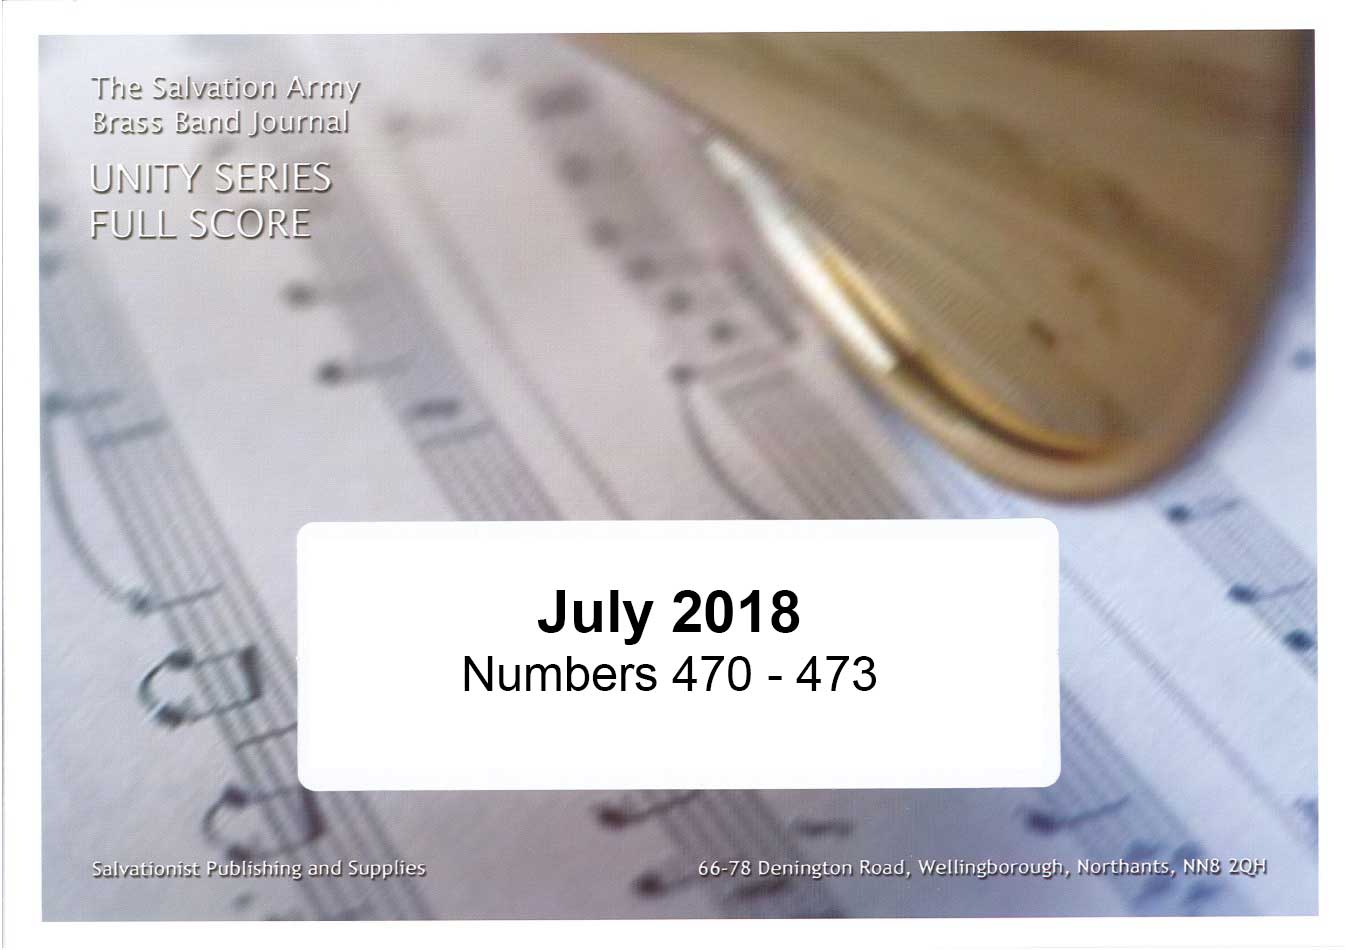 Unity Series Band Journal July 2018 - Numbers 470-473